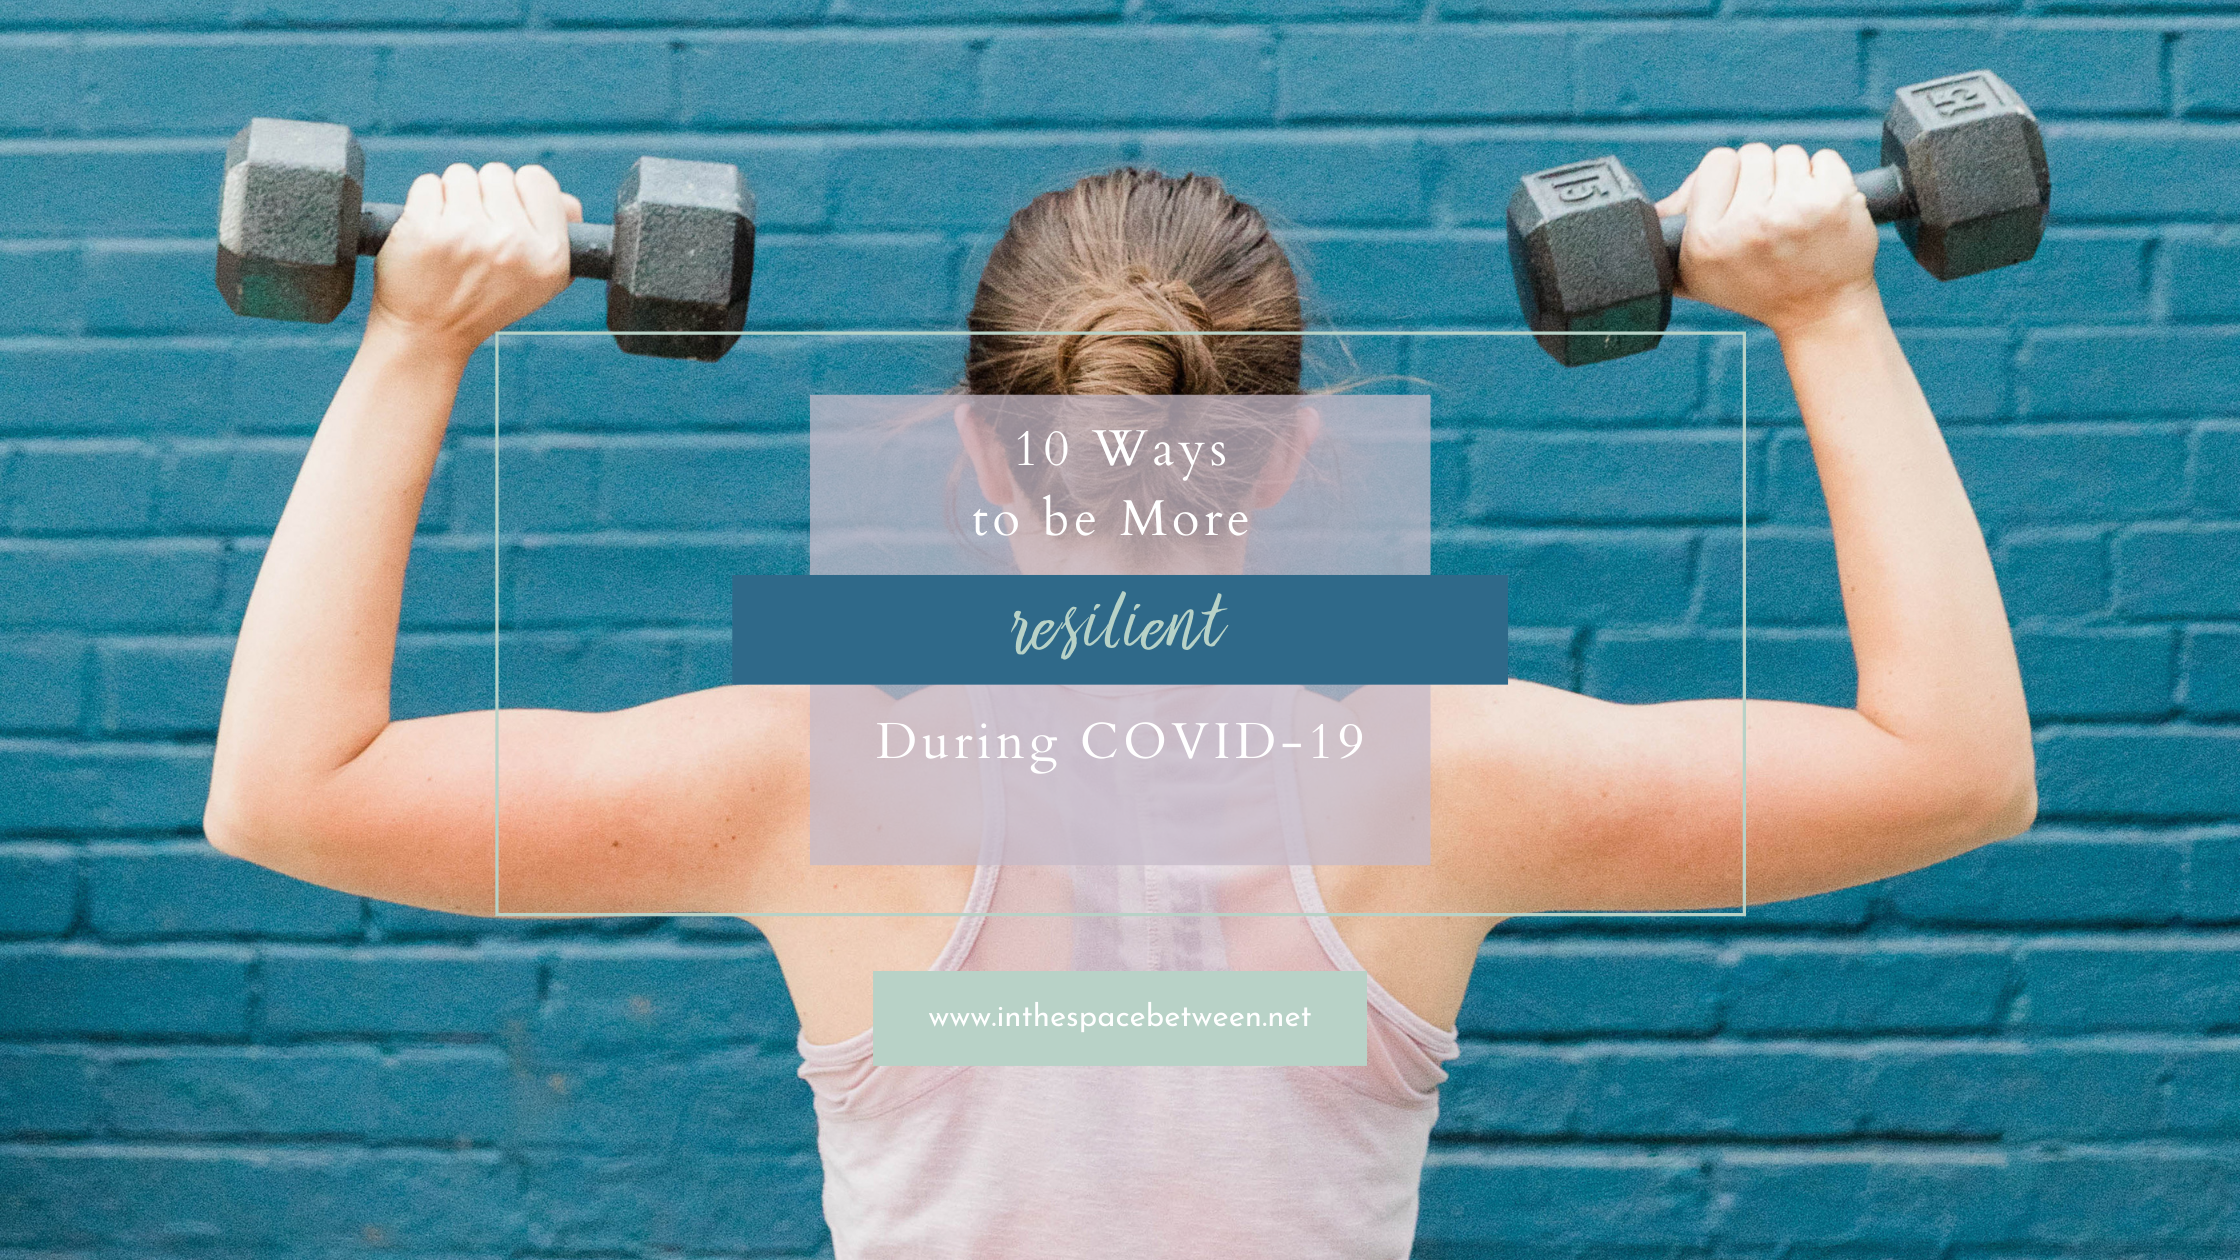 10 Ways to be More Resilient During COVID-19